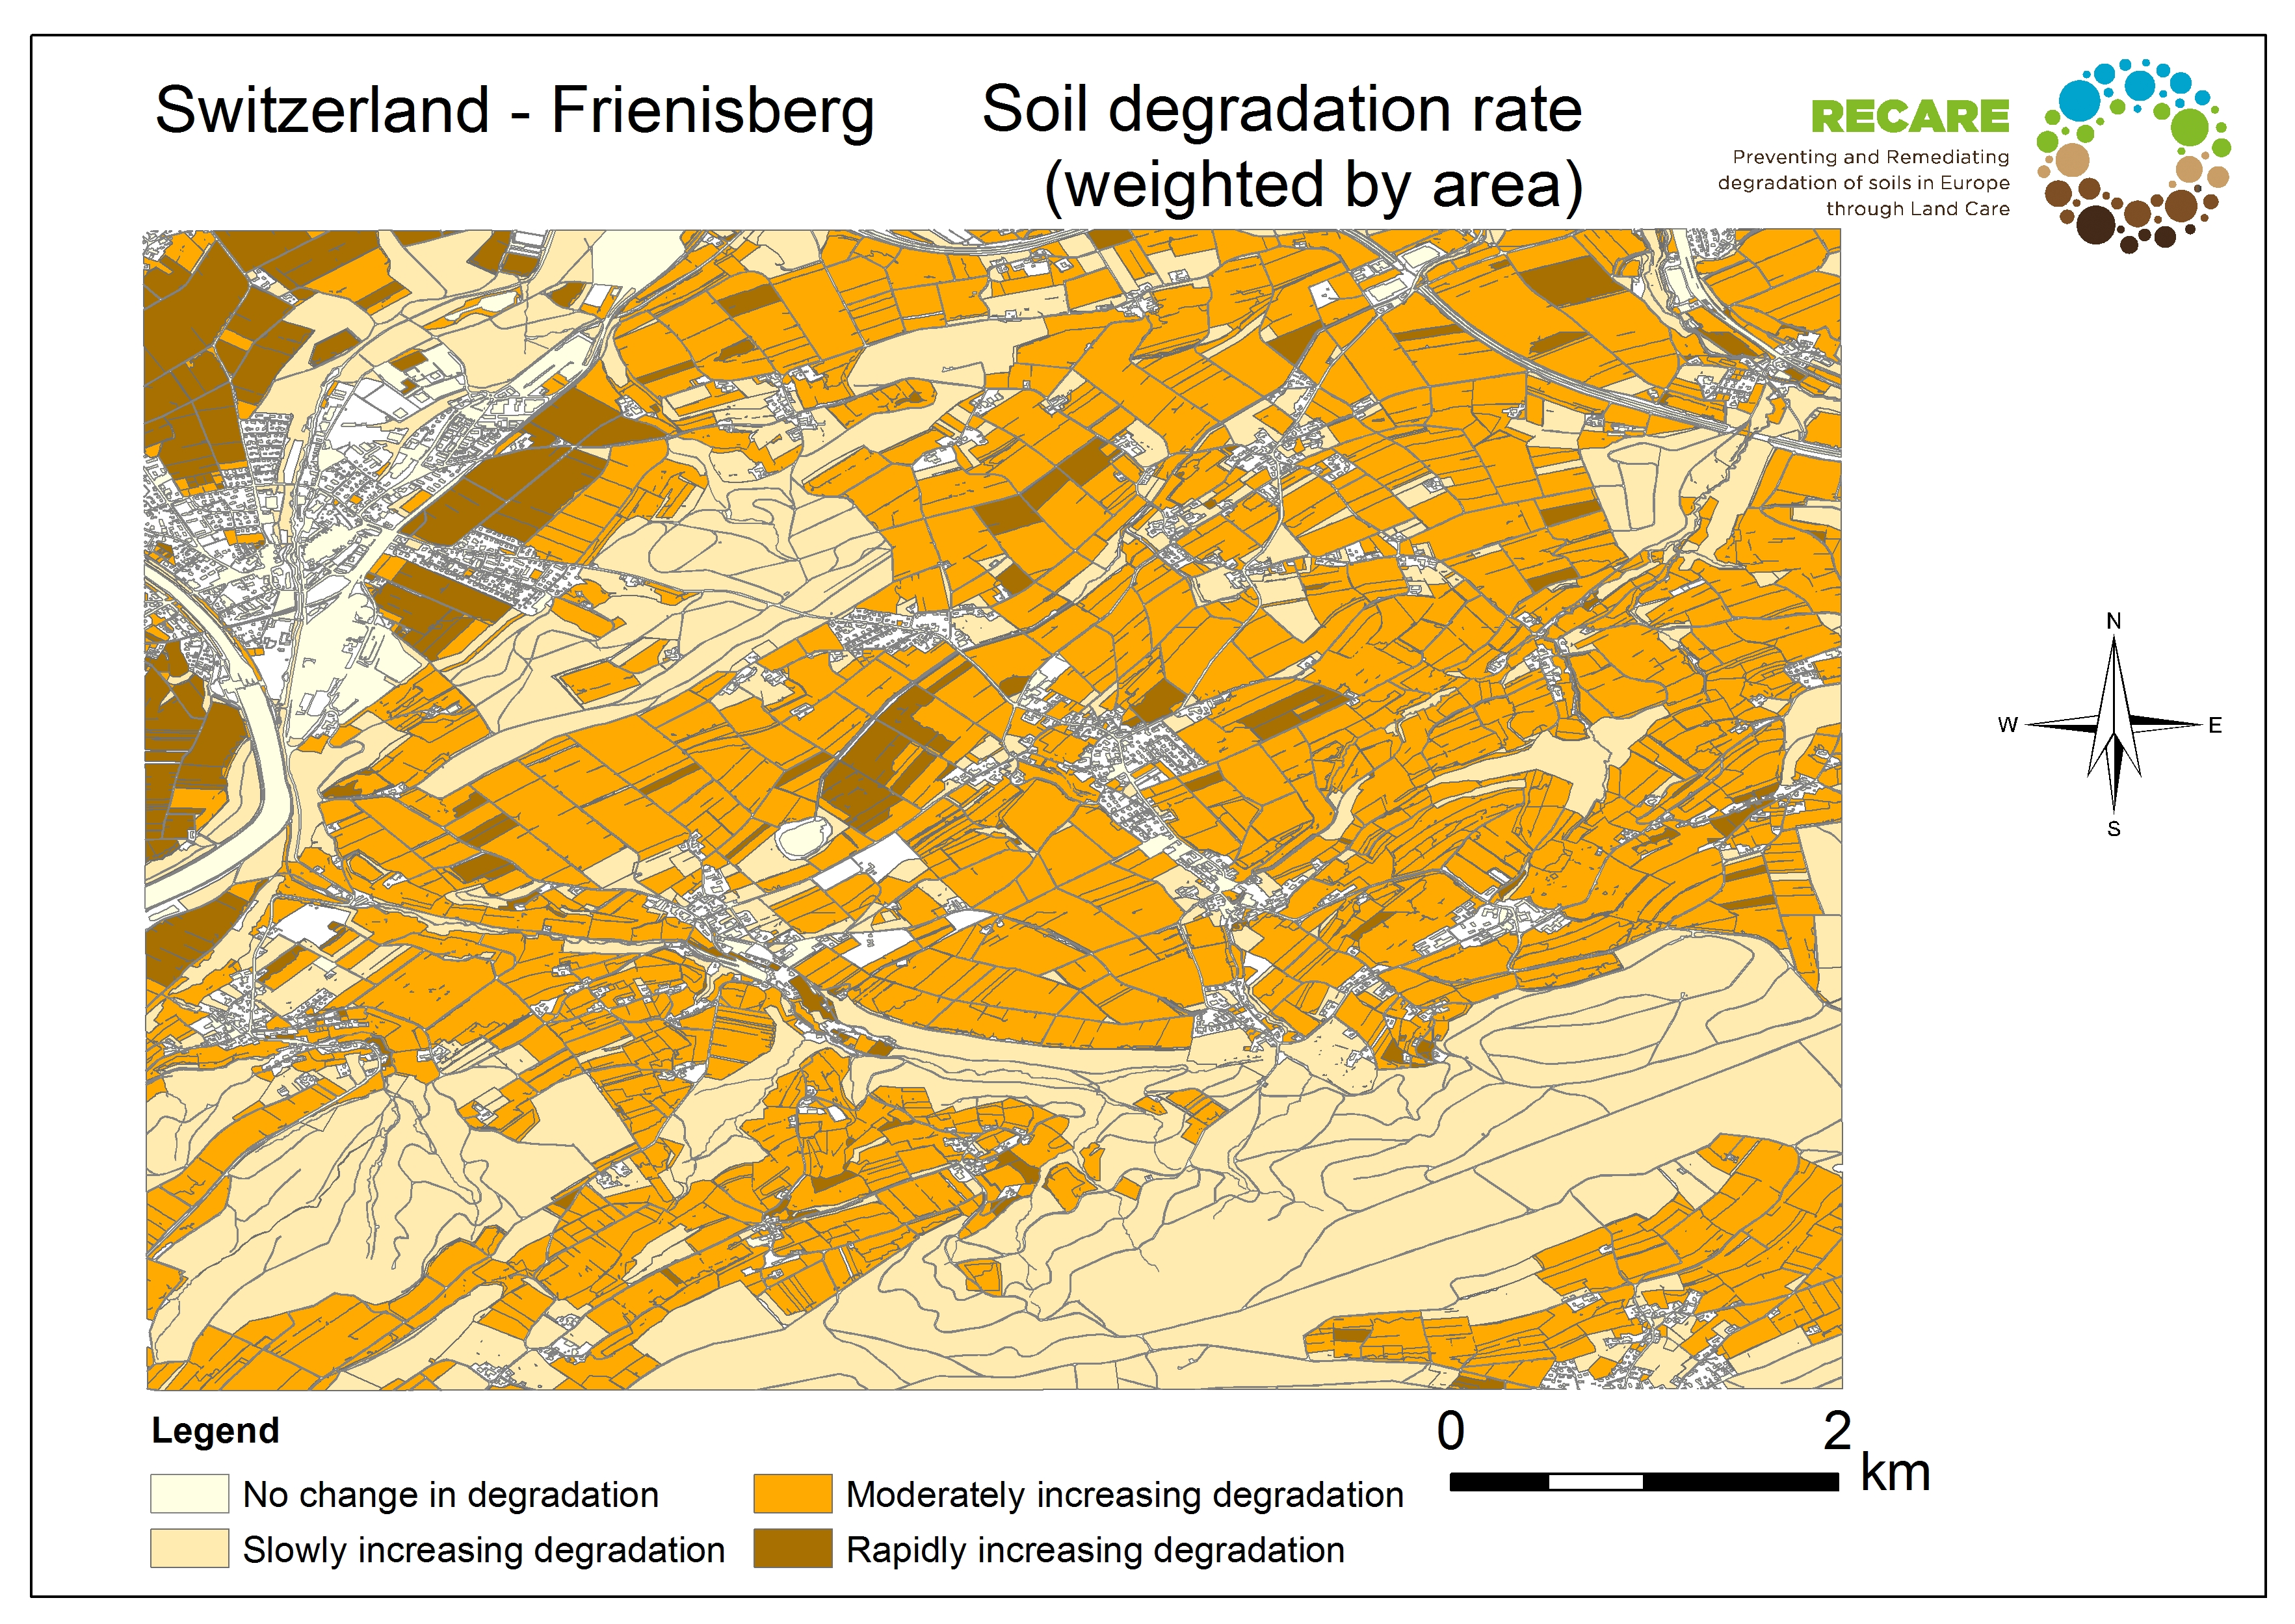 Switzerland Frienisberg rate of degradation